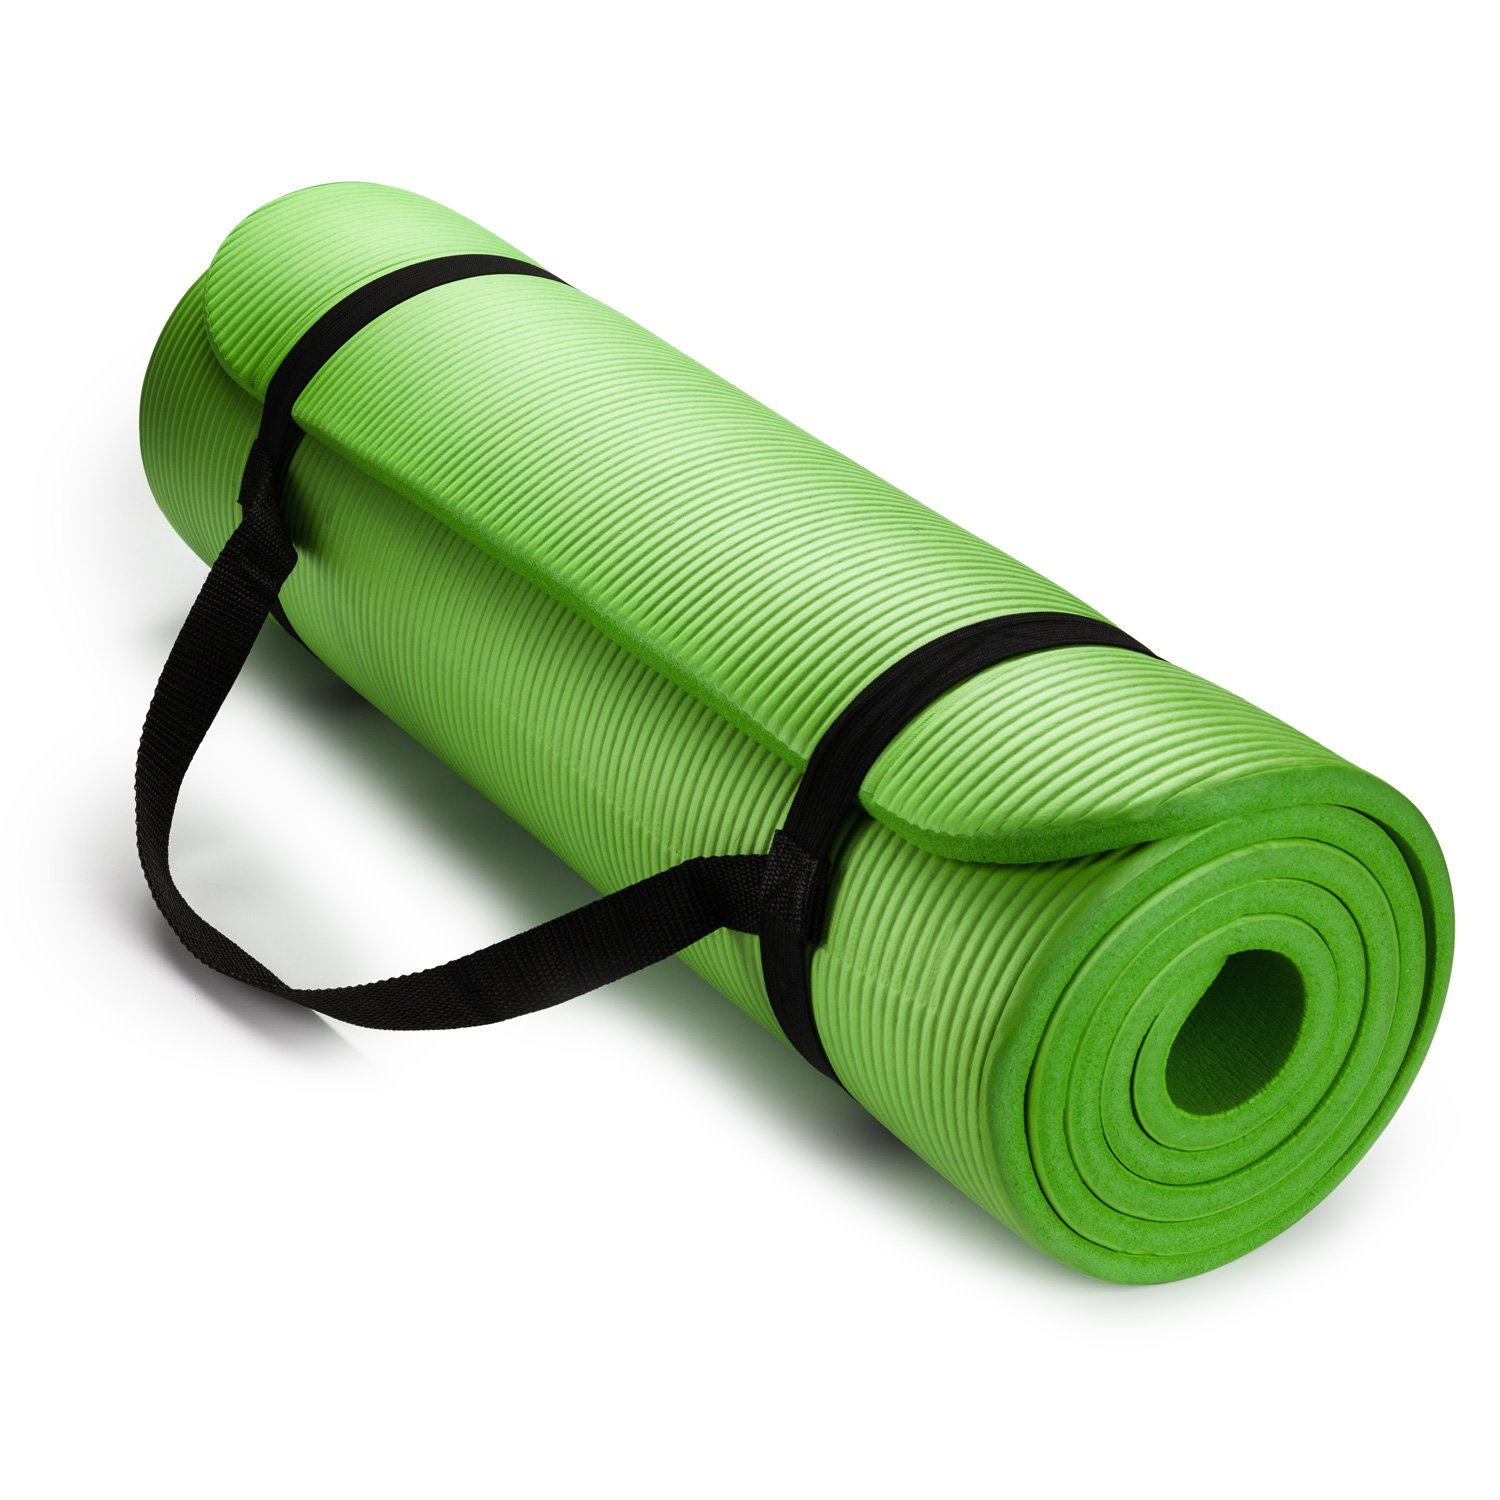 HemingWeigh 1/2-Inch Extra Thick High Density Exercise Yoga Mat with Carrying Strap (Green)